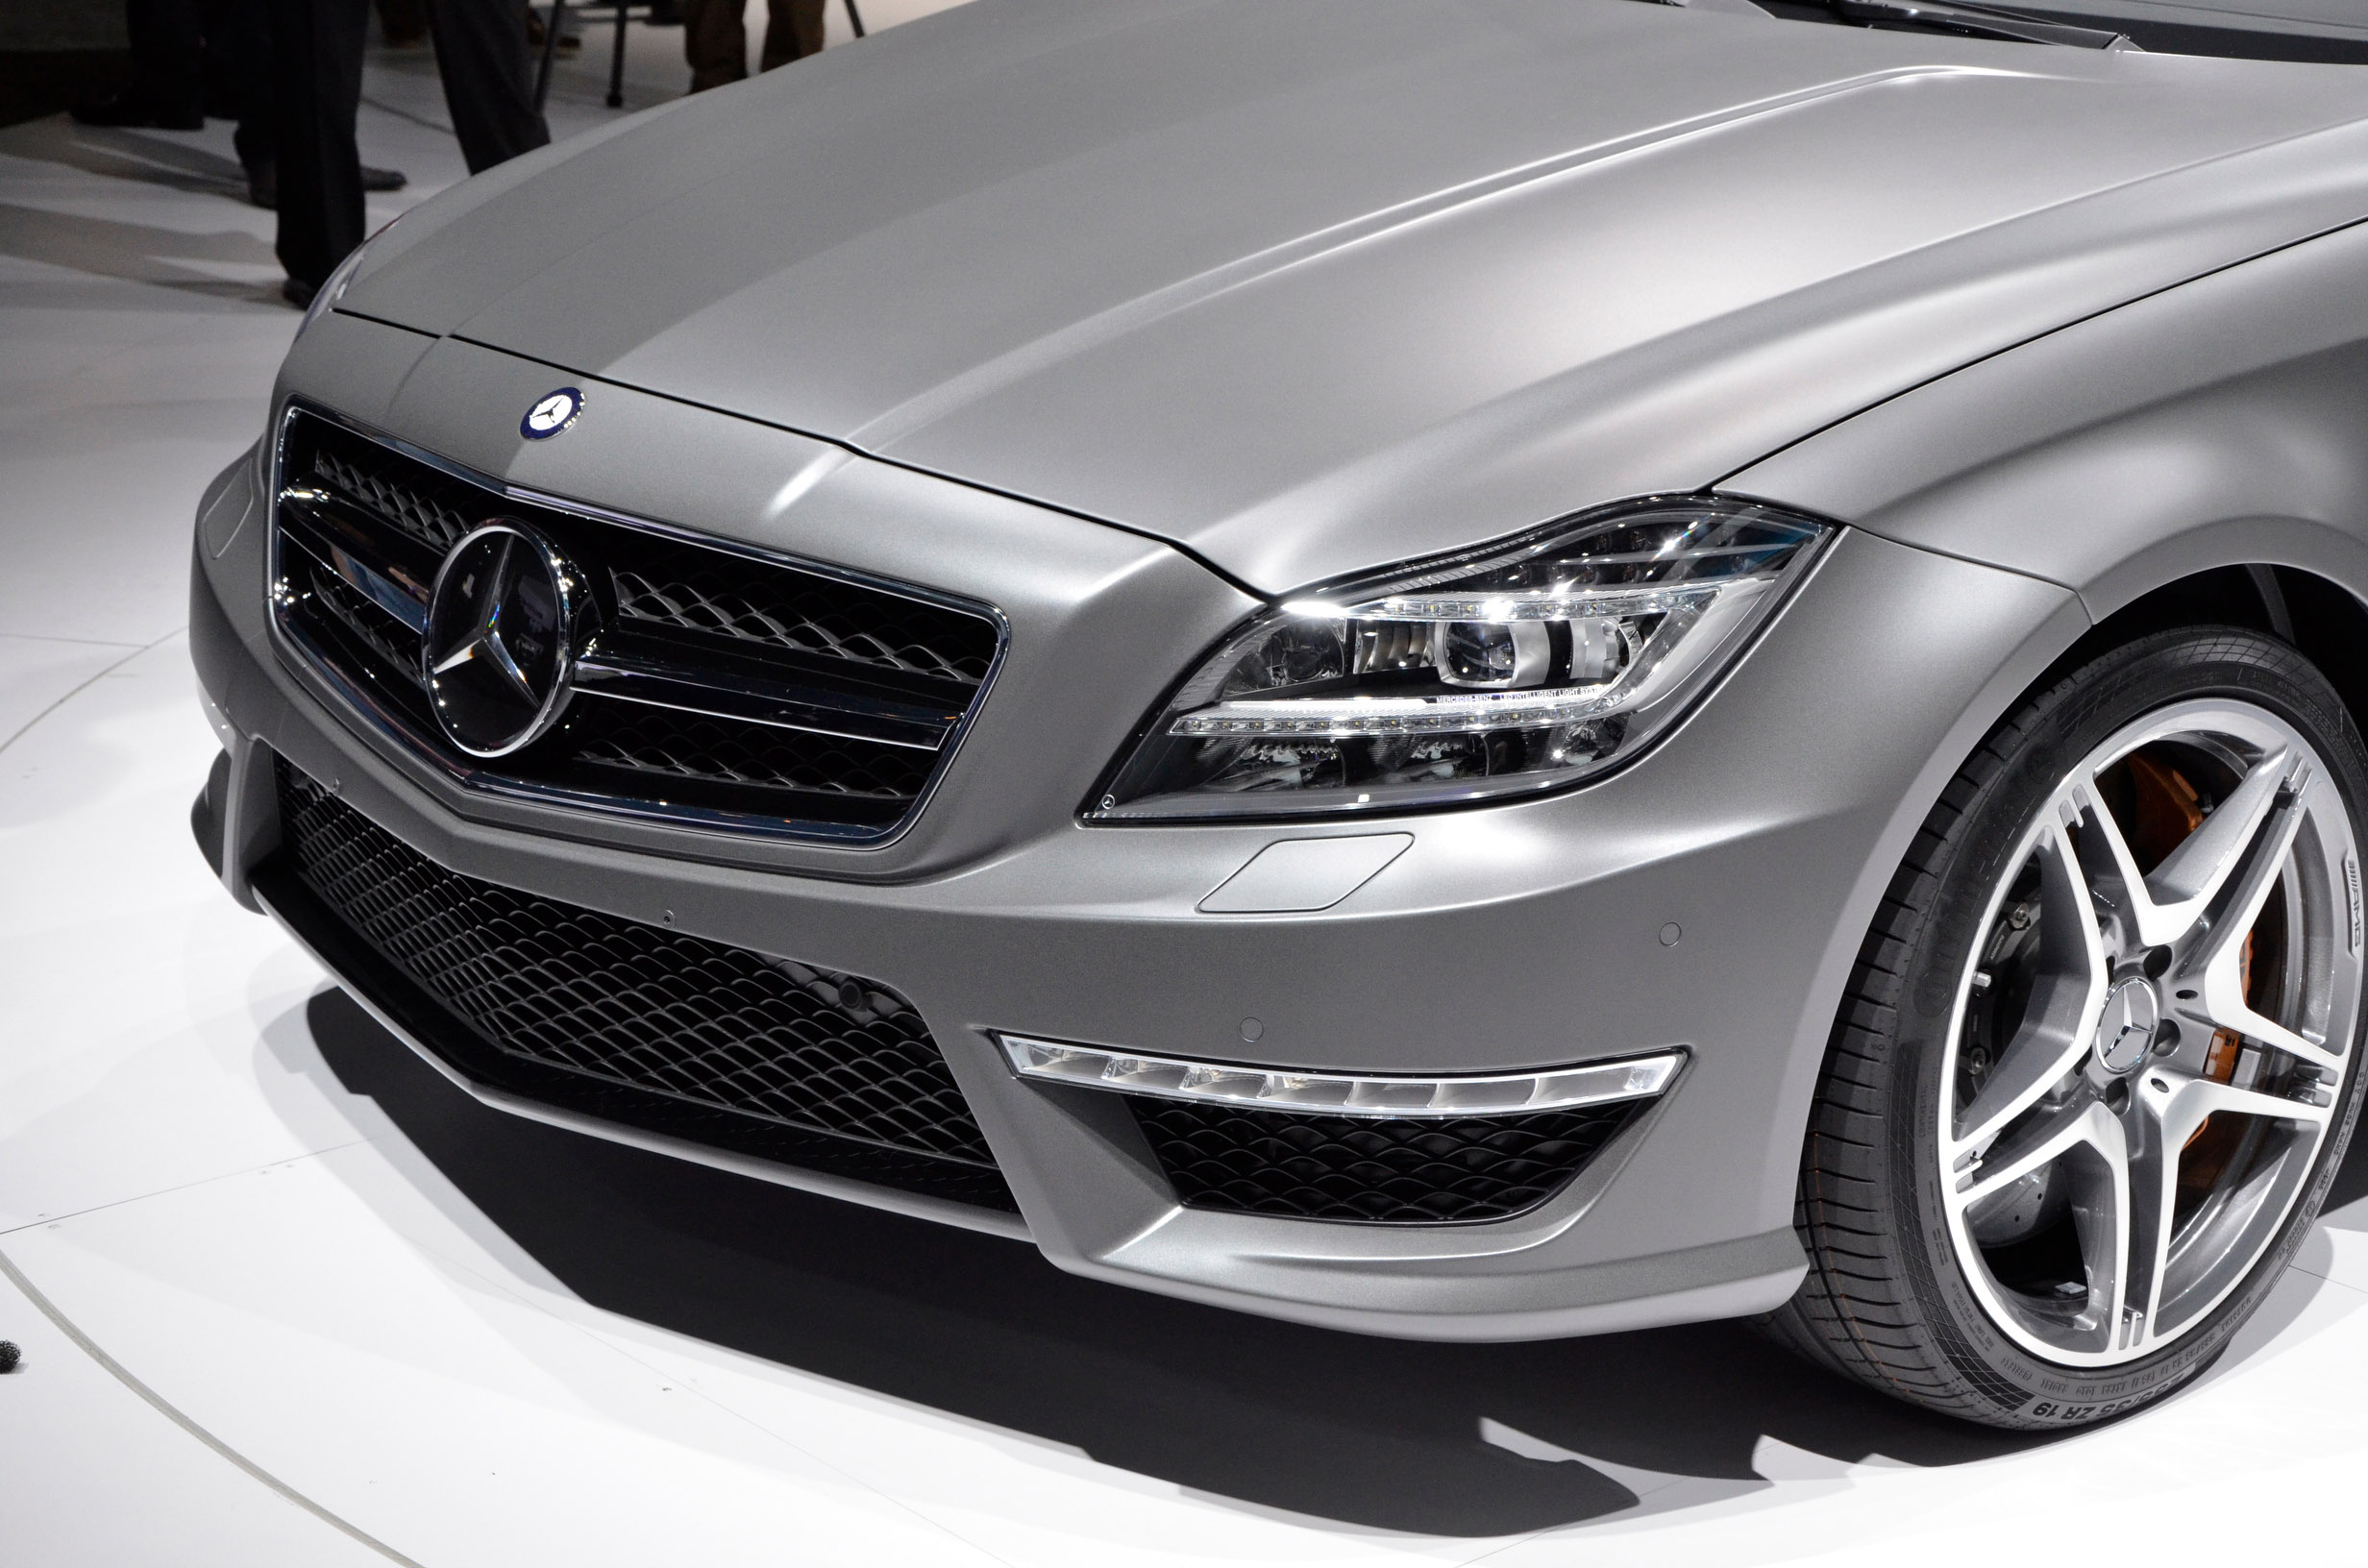 Mercedes cls 63 amg price 2010 for Mercedes benz cls63 amg price